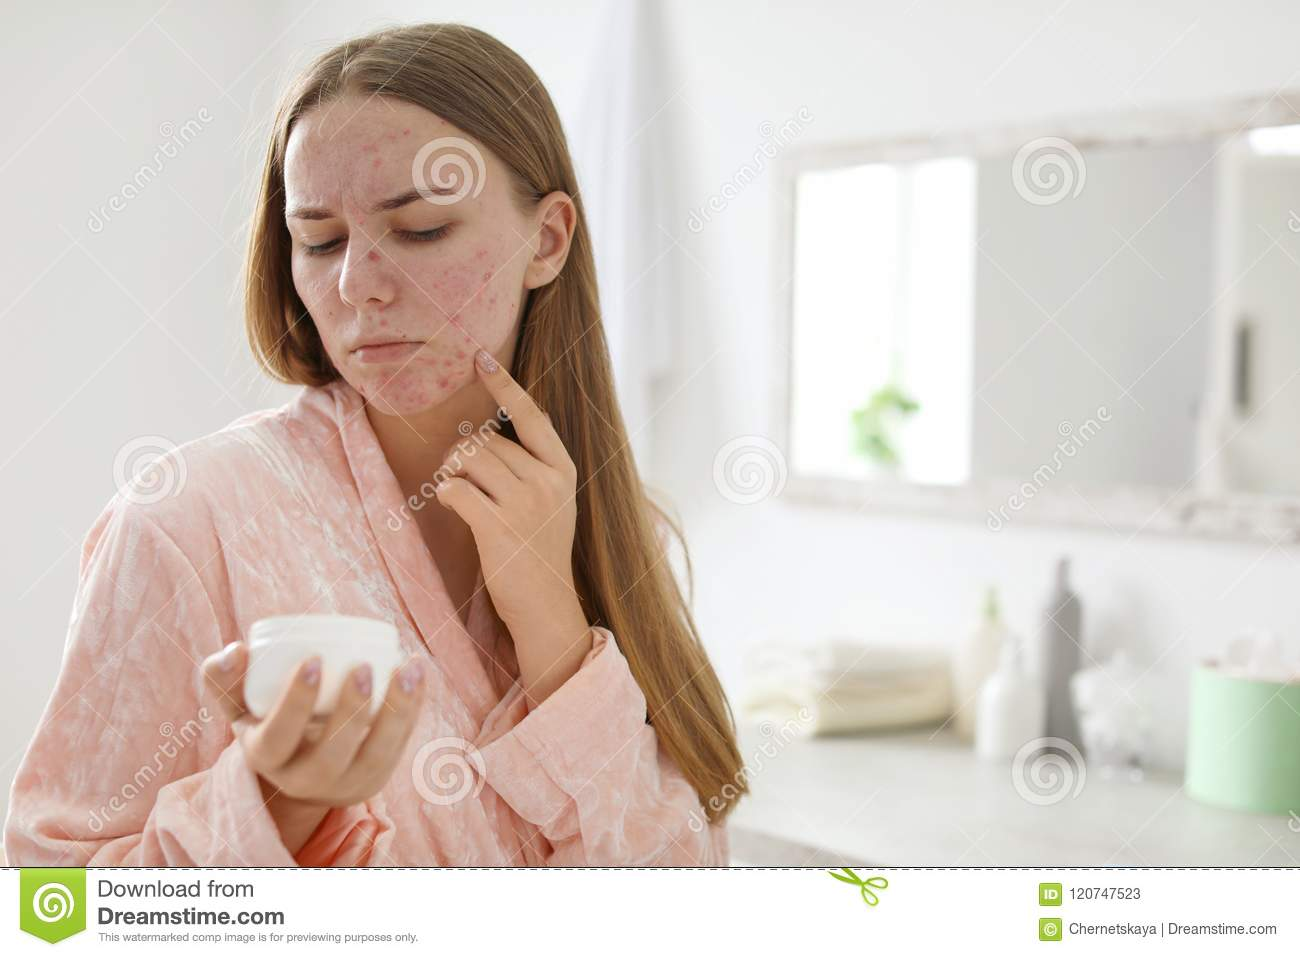 Young woman with acne problem holding jar